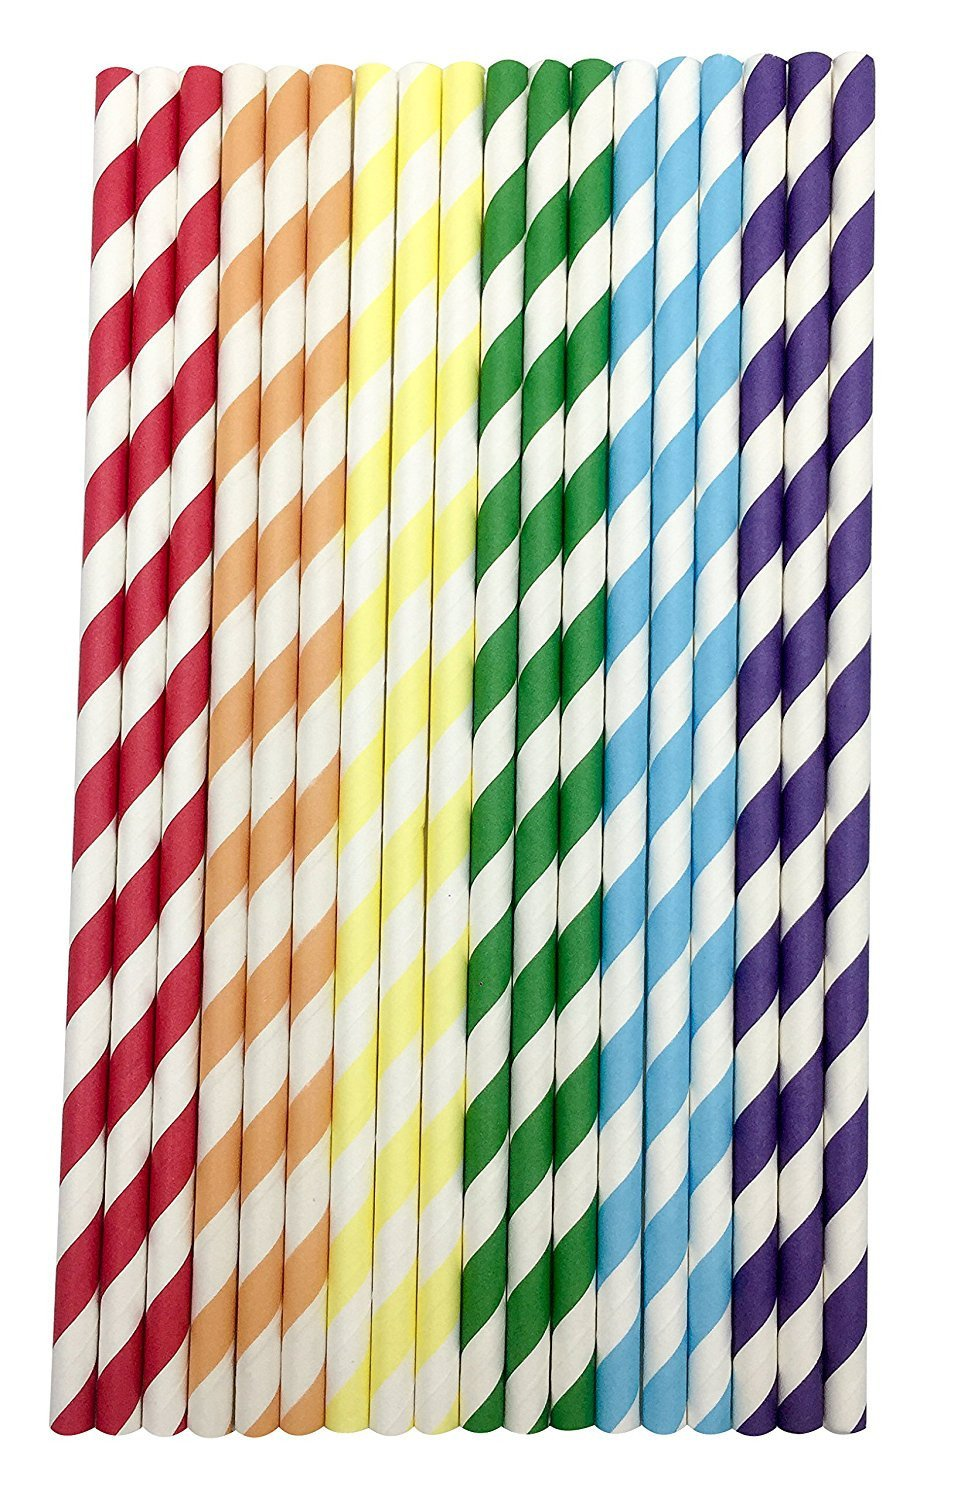 XGao 150pcs Paper Straws Rainbow Striped Design Quality Multi Colored Biodegradable BPA-Free 8.25 Straw for Everyday Birthday Party Baby Shower Wedding Anniversary Parties Long Lasting